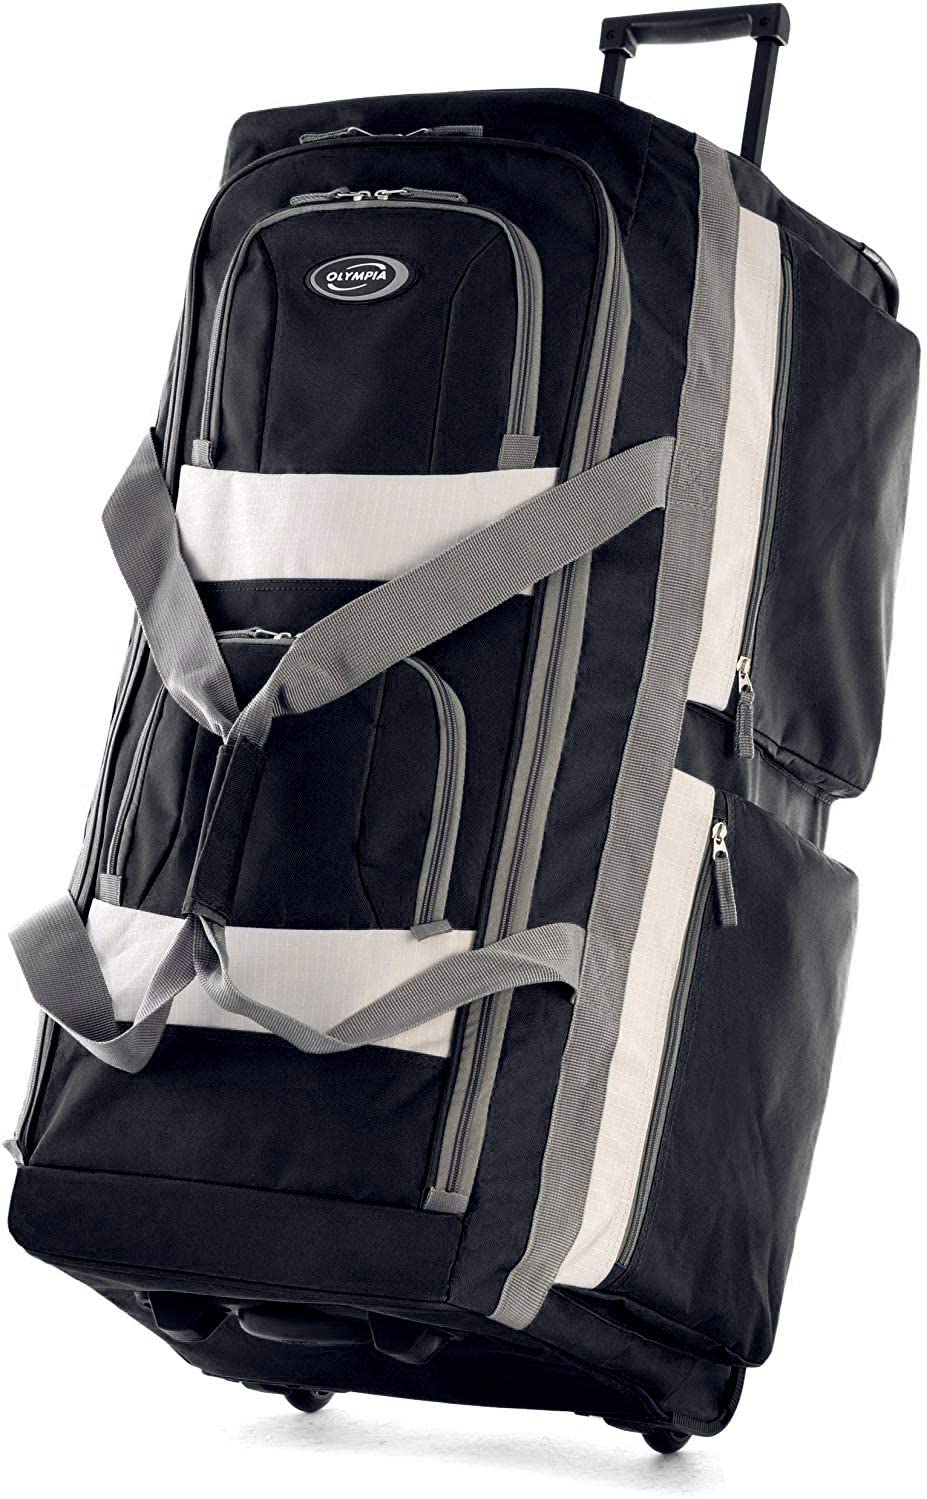 22-inch Olympia 8 pocket rolling duffle bag in black